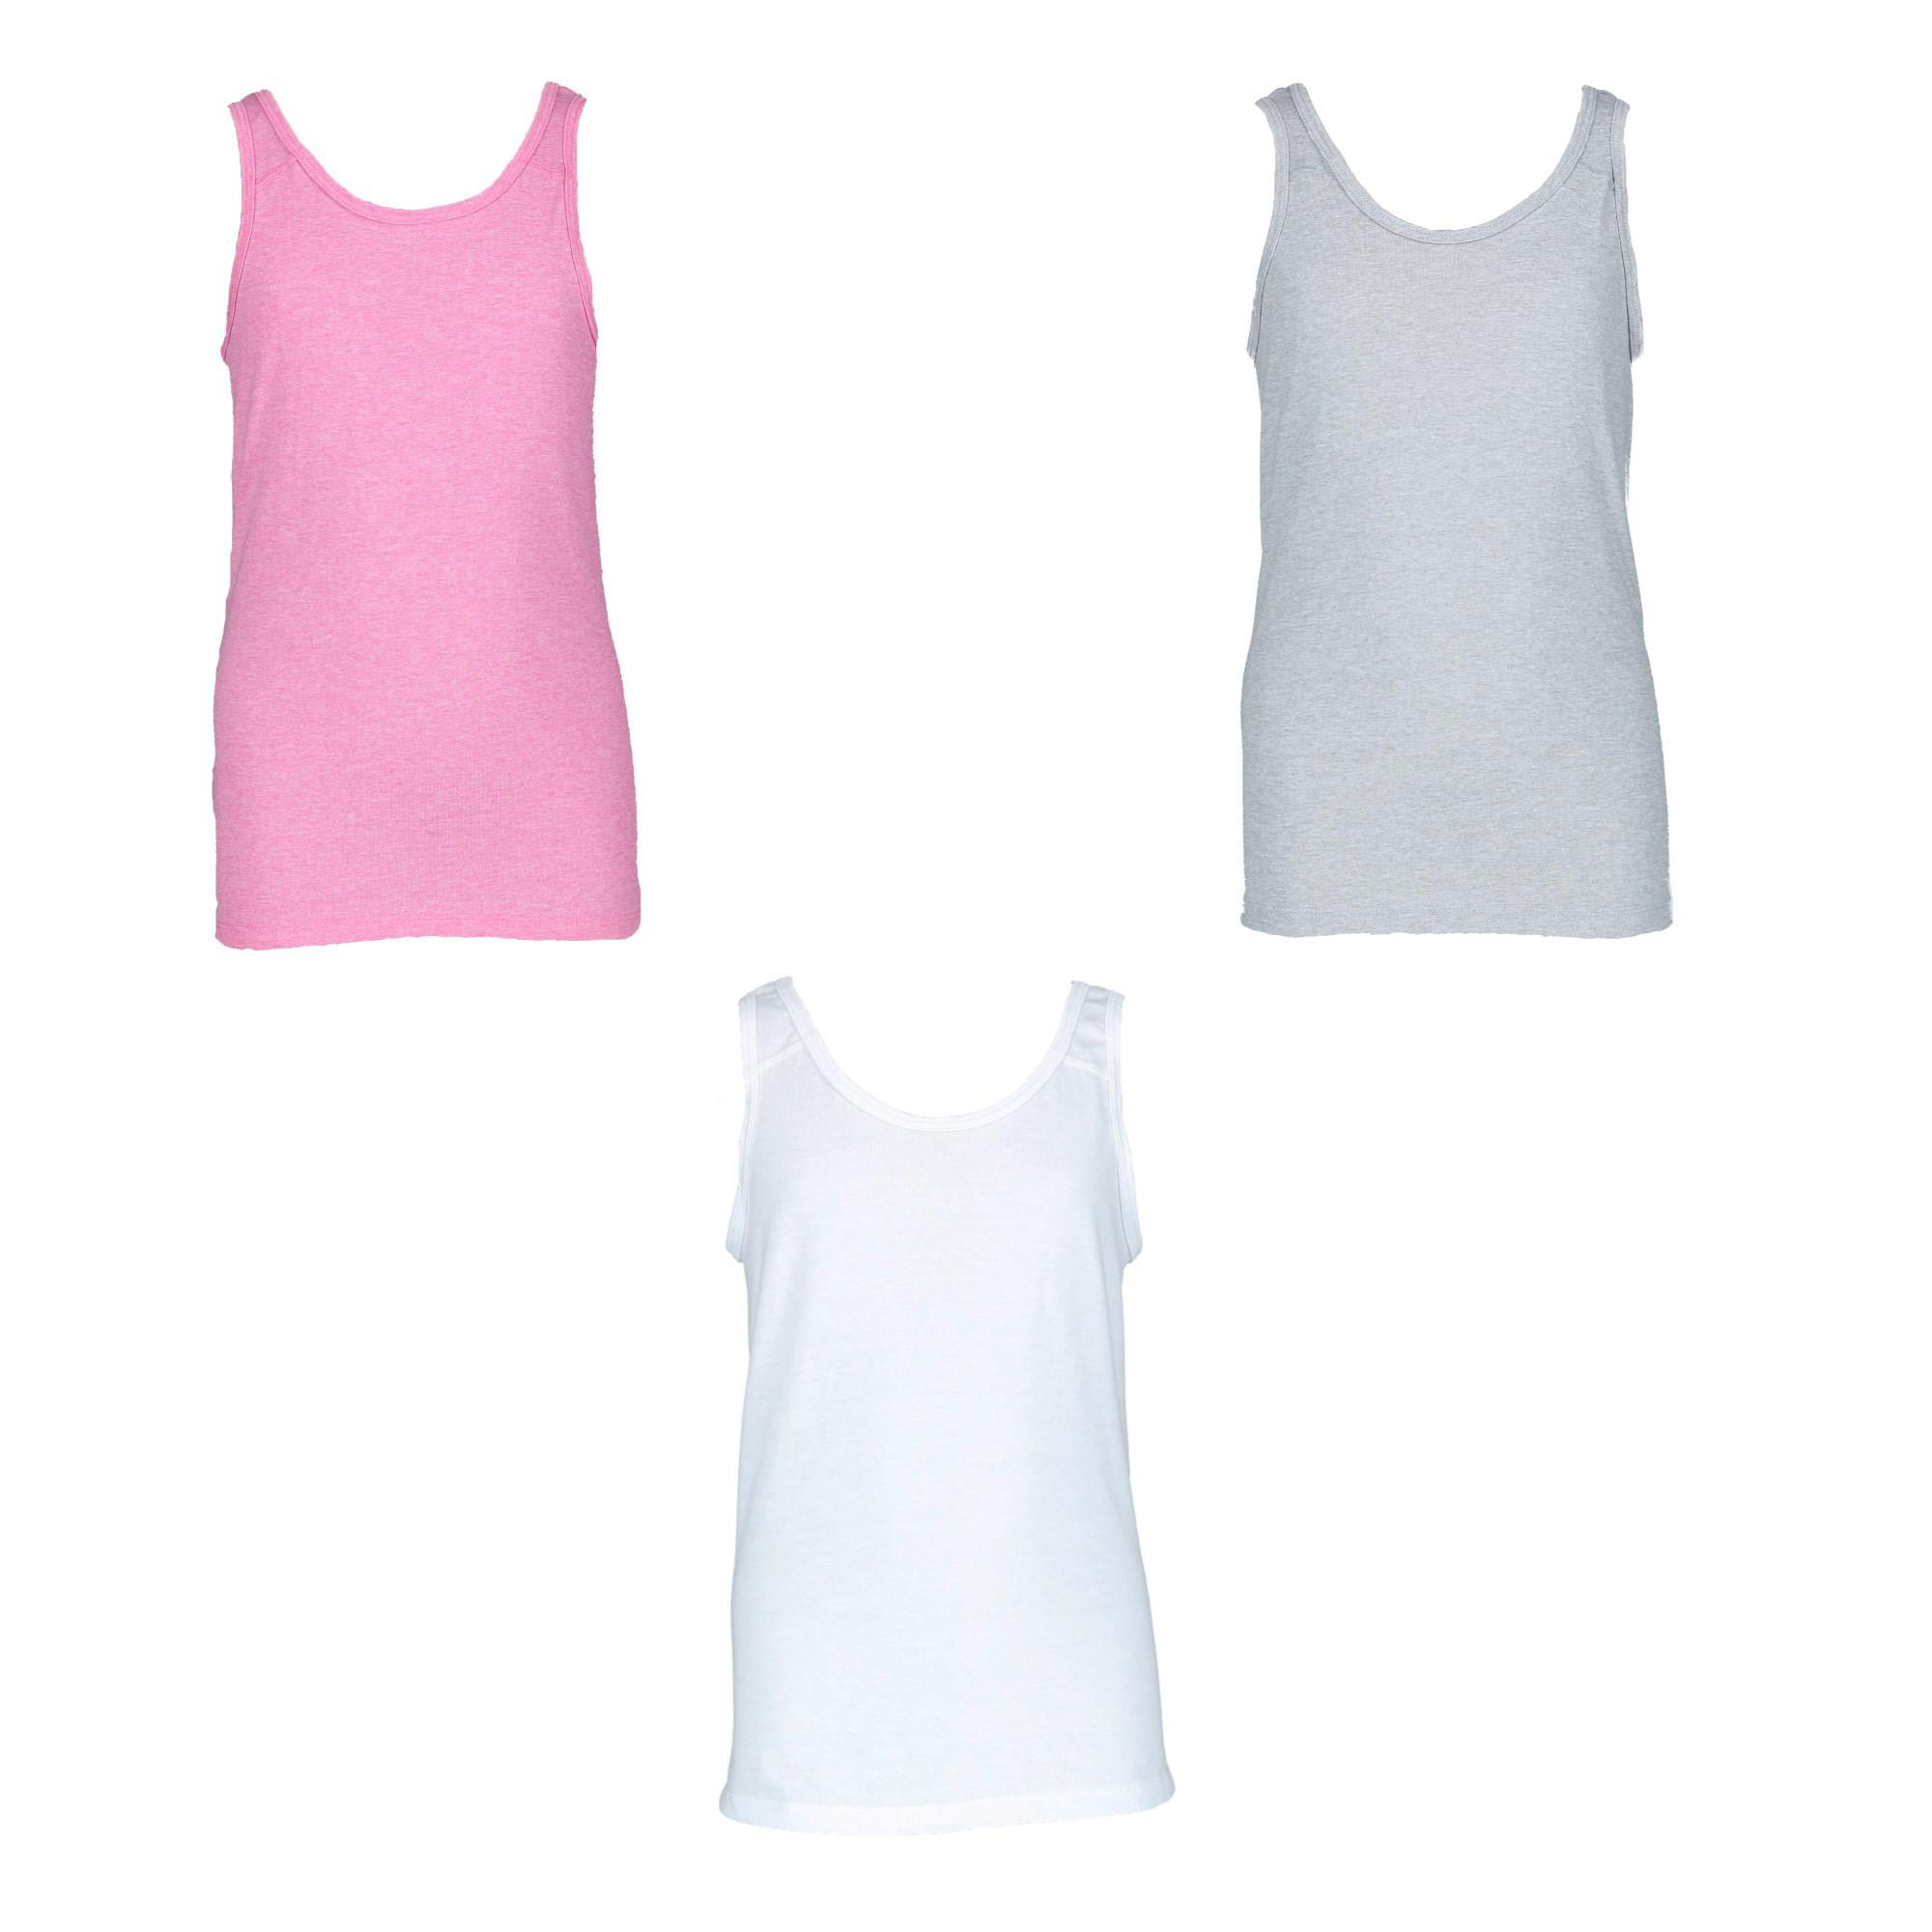 Assorted//Jersey, Fruit of the Loom Big Girls Tank Pack of 5